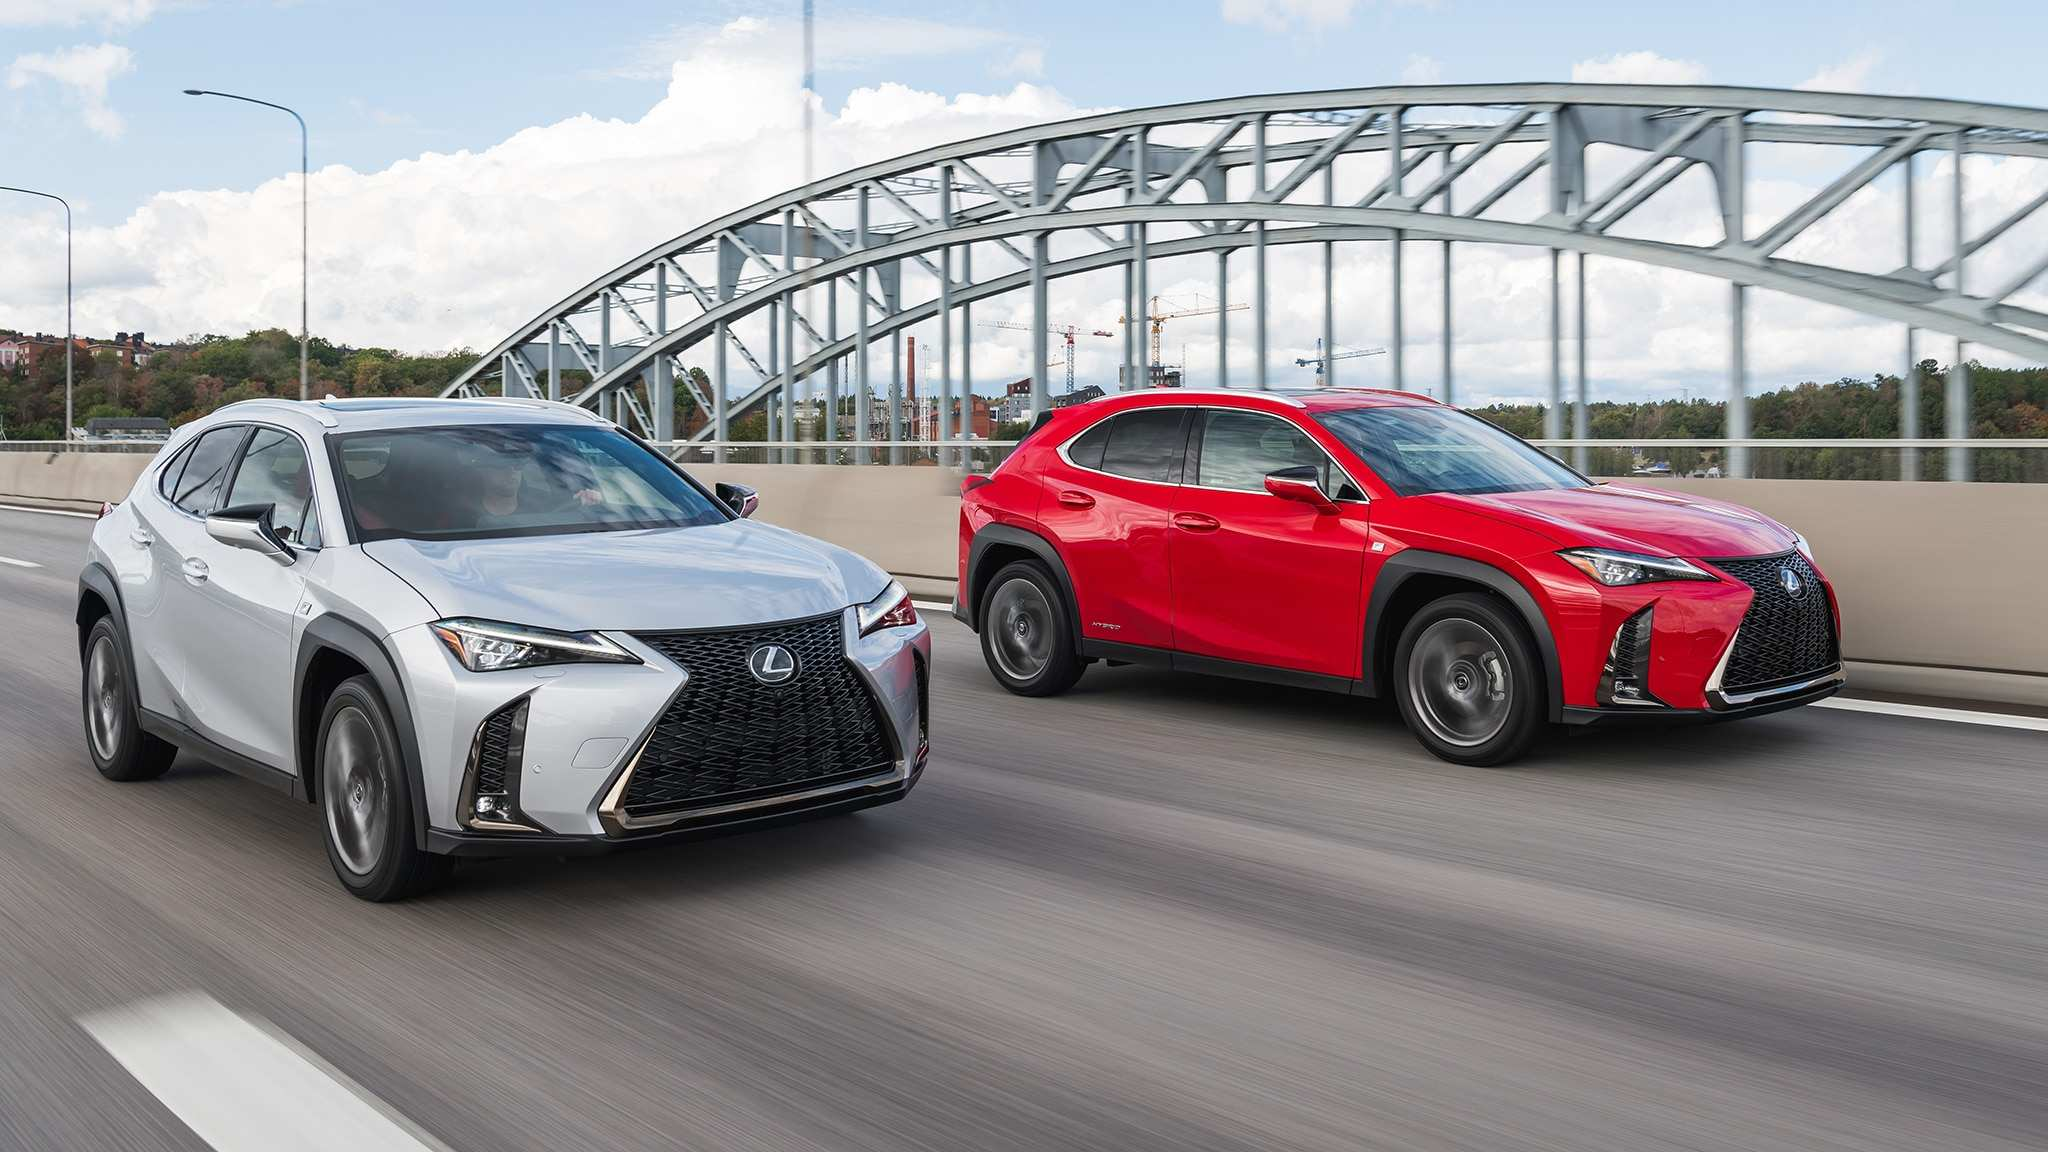 78 The 2019 Lexus Ux Canada Price and Review for 2019 Lexus Ux Canada